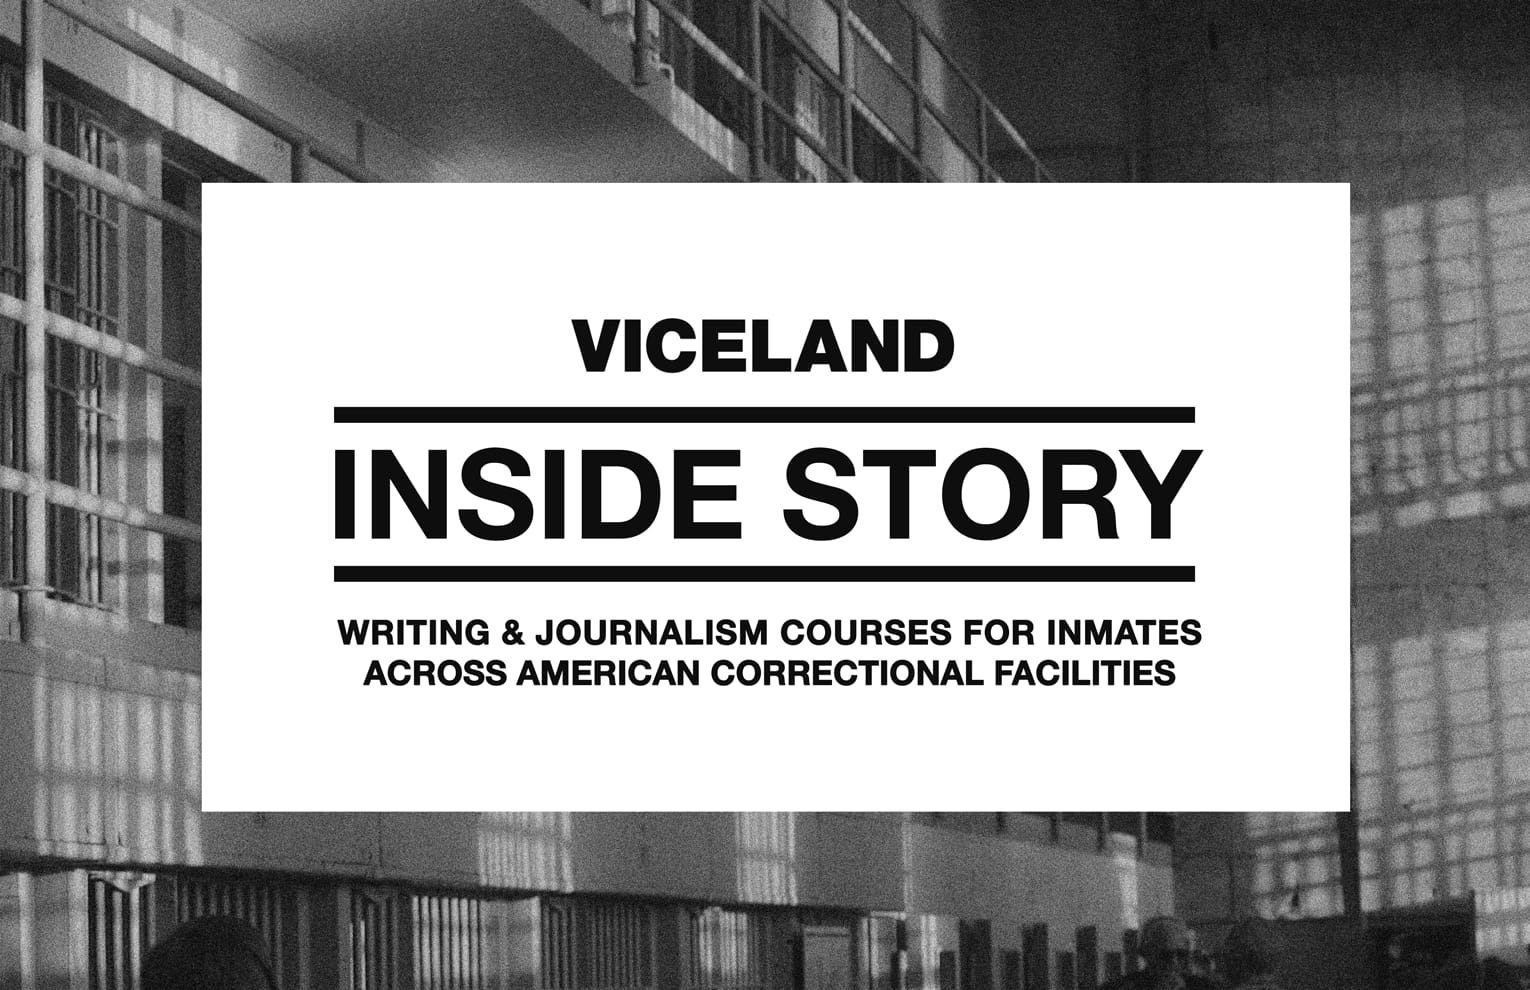 Viceland - We get the stories because we've lived the stories